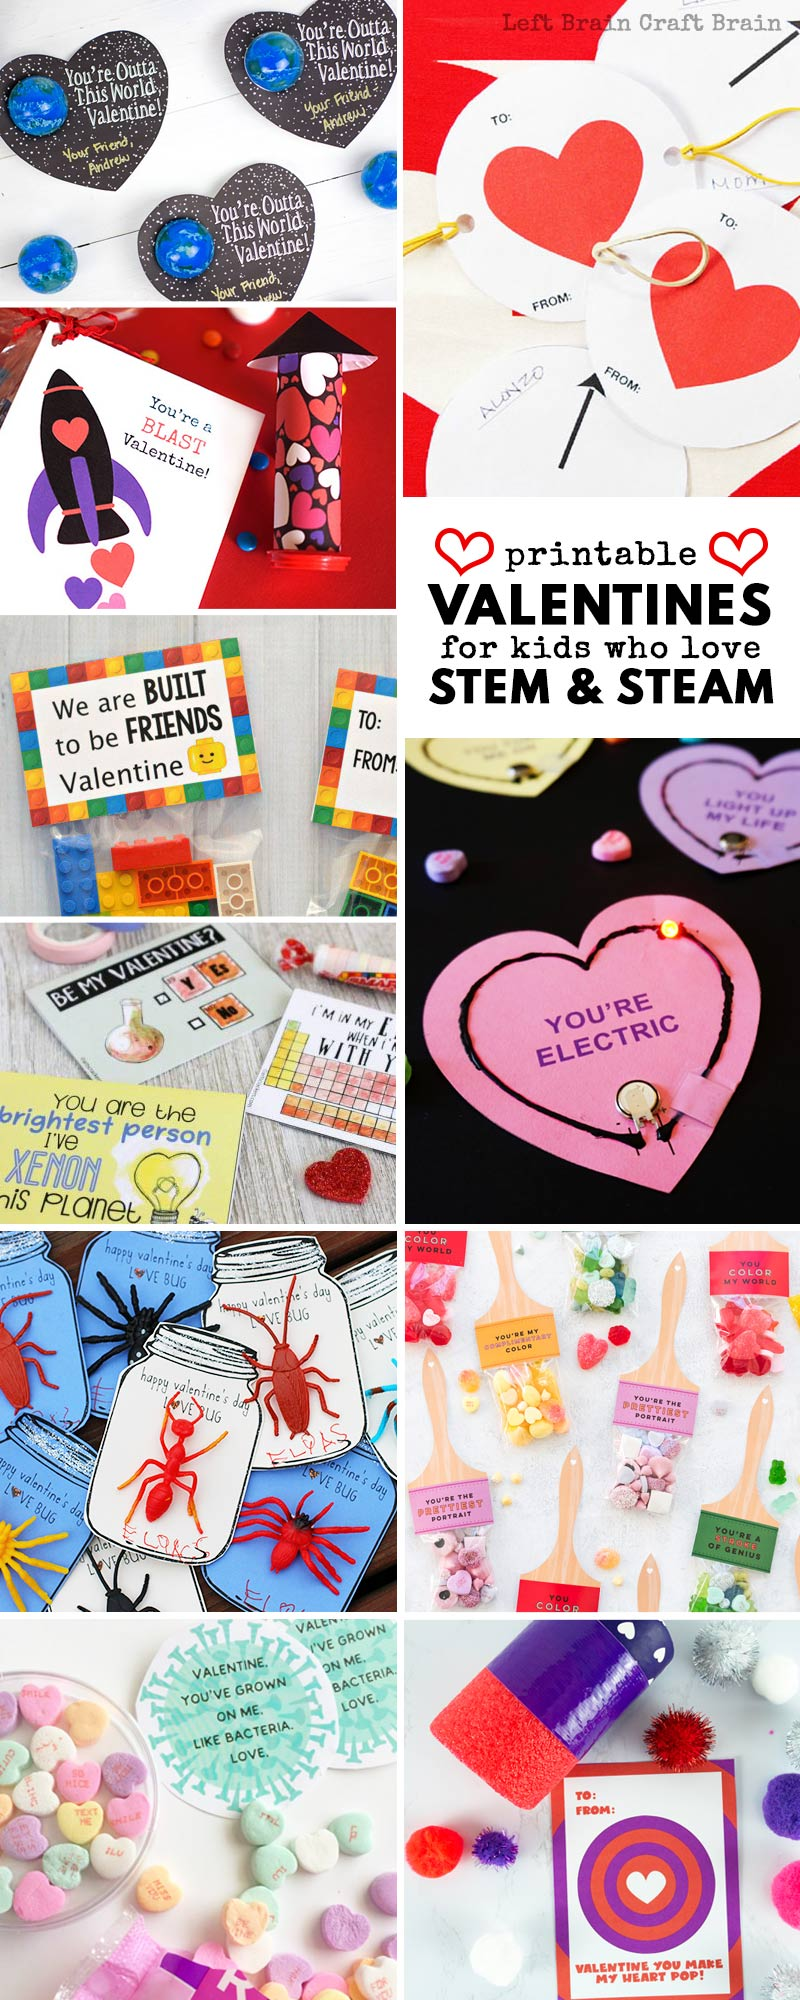 Show your love for STEM and STEAM (science, technology, engineering, art, and math) with these cool (and free) printable Valentine cards. Printable Valentines make celebrating Valentine's Day super easy and fun.